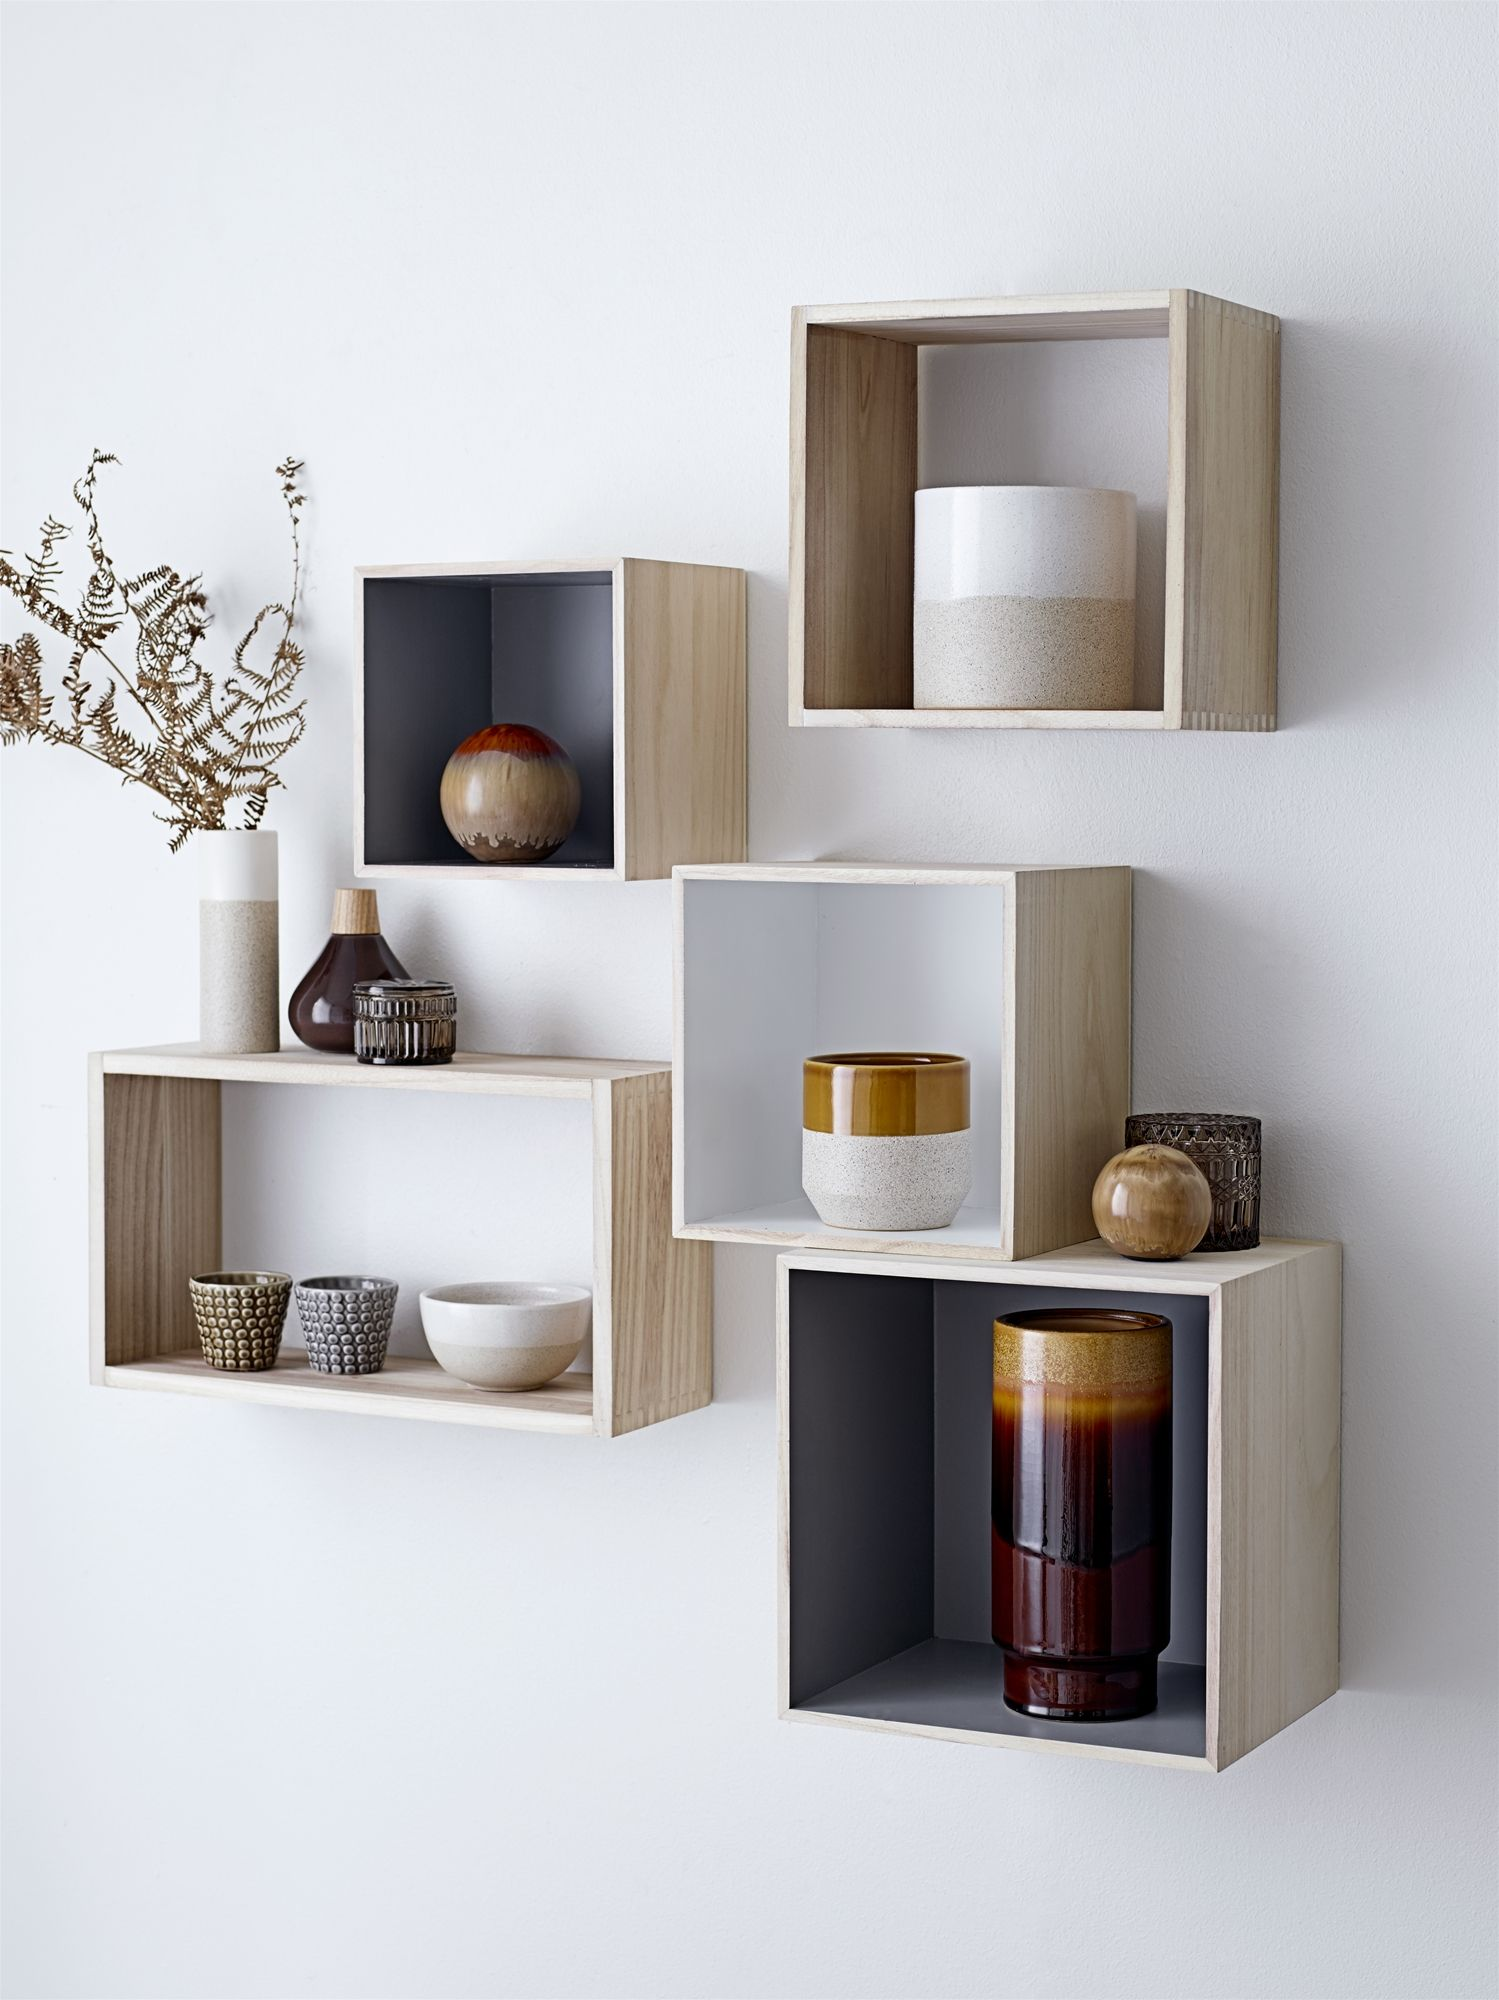 Wooden Shelves And Seventies Vases Bloomingville Bloomingville  # Meuble Seventies